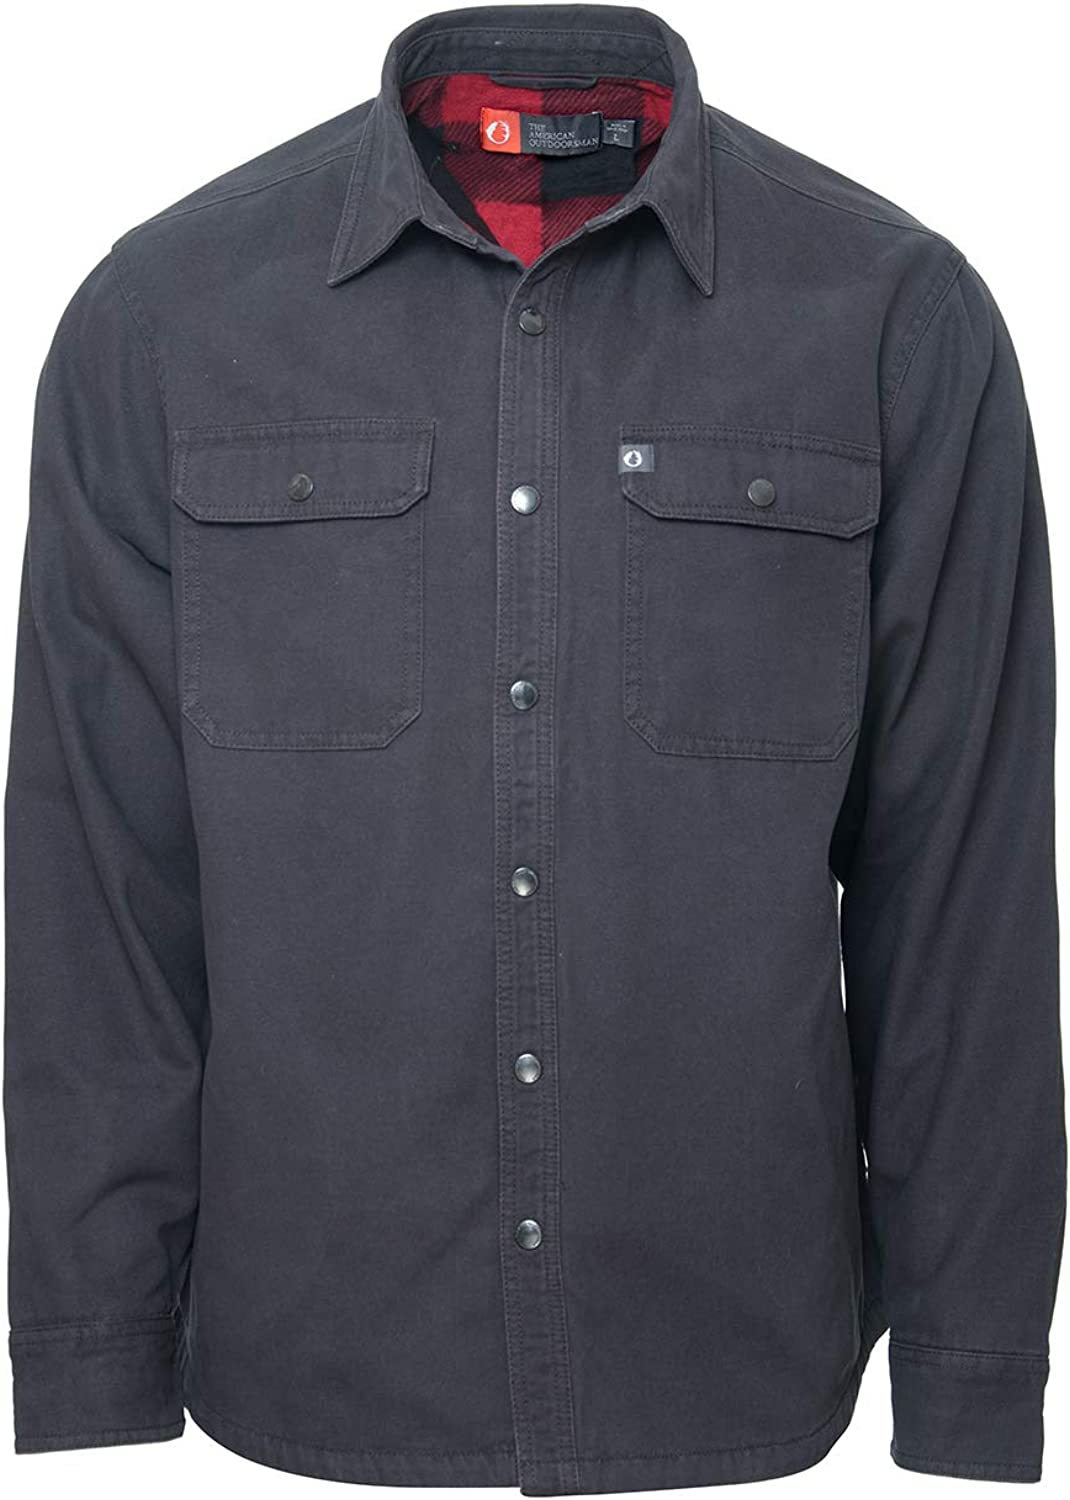 The American Outdoorsman Fleece Lined Washed Canvas Shirt Jackets for Men